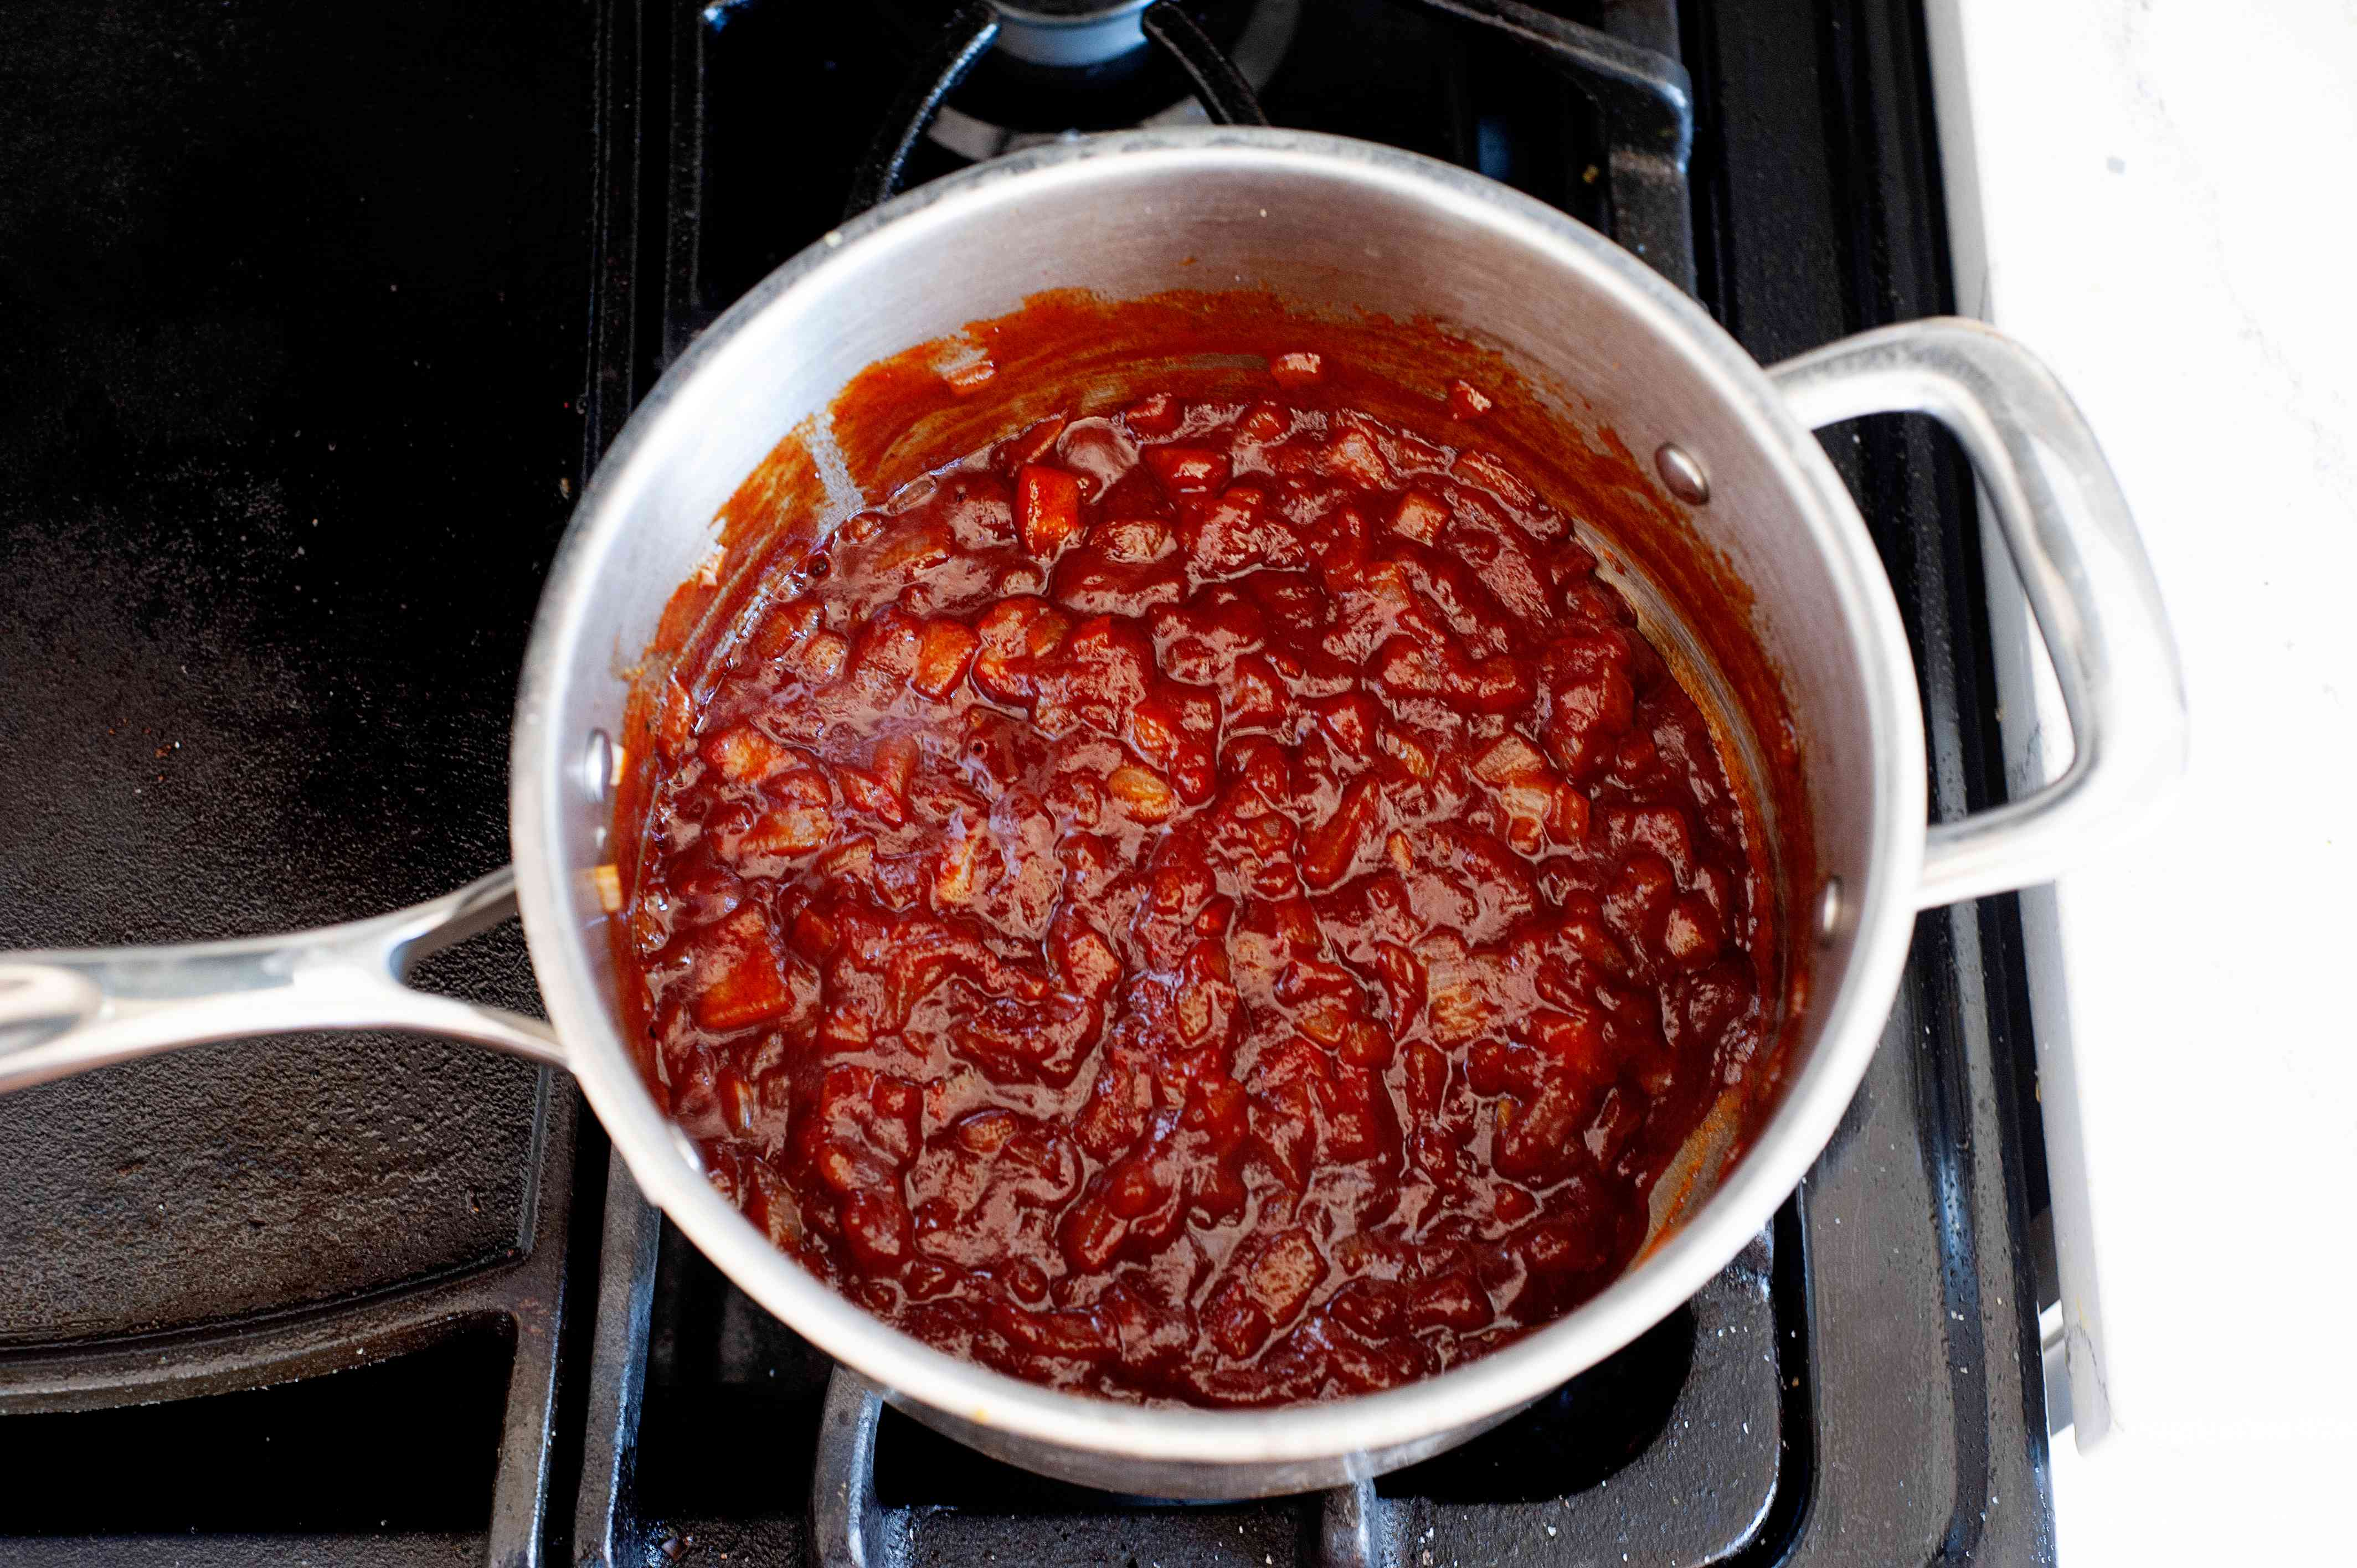 Cooking easy homemade ketchup in a pot.